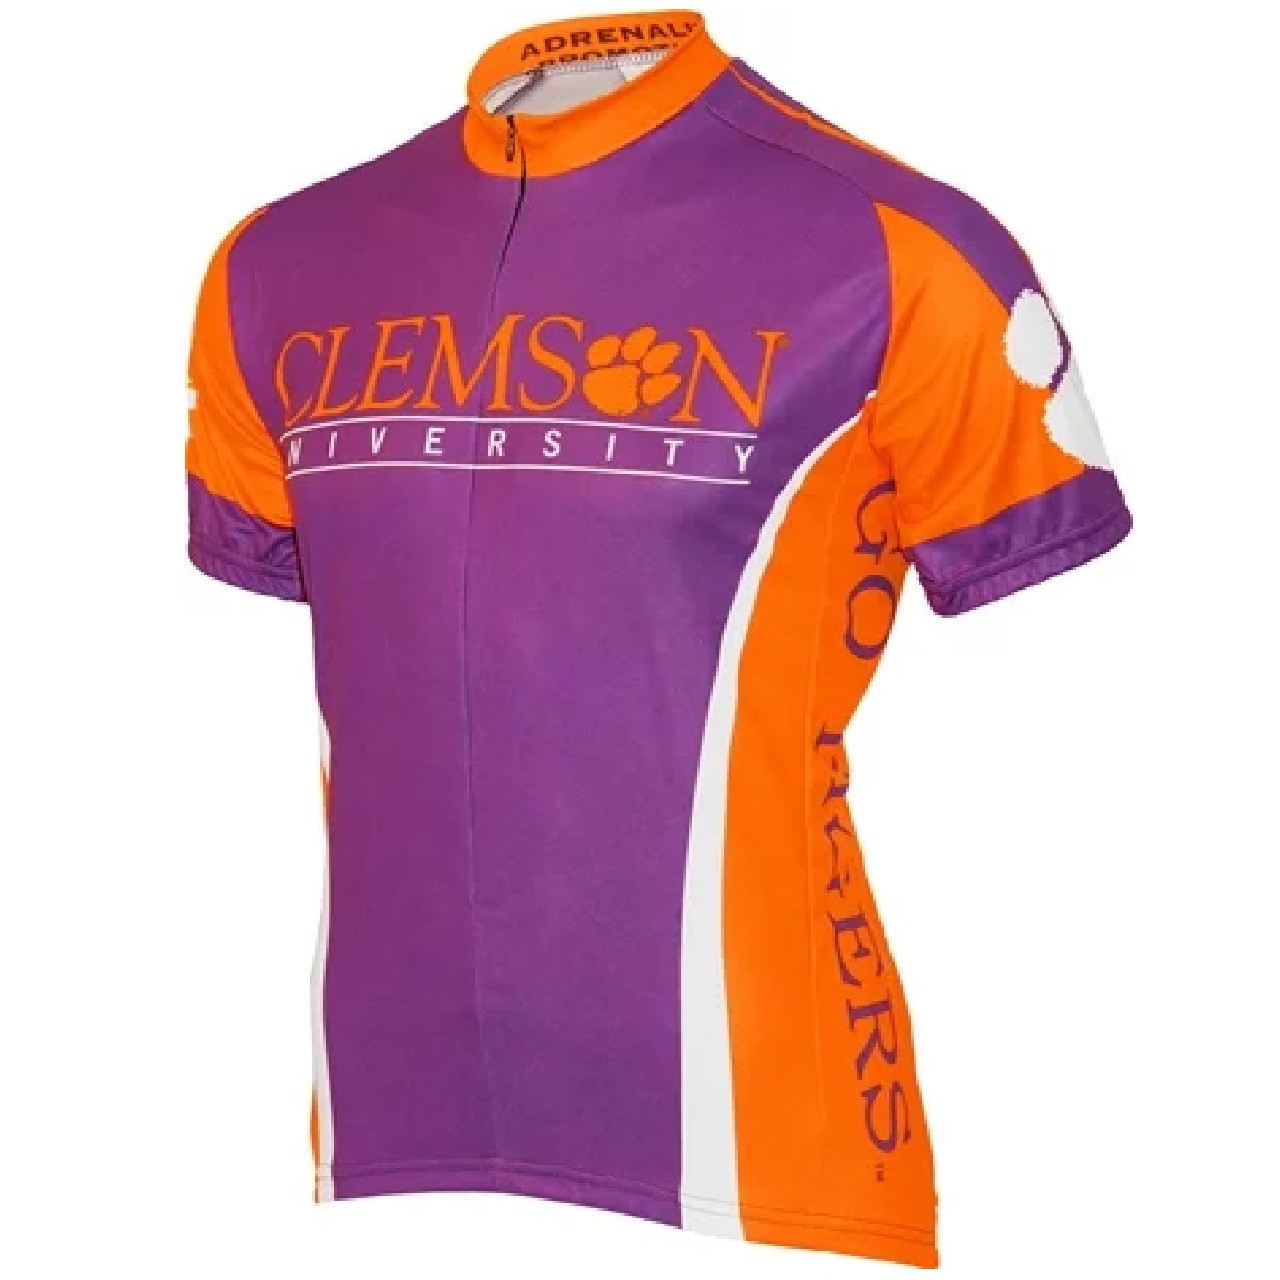 check out d0f5c 6304d Adrenaline Promo Clemson University Tigers College 3/4 zip Men's Cycling  Jersey